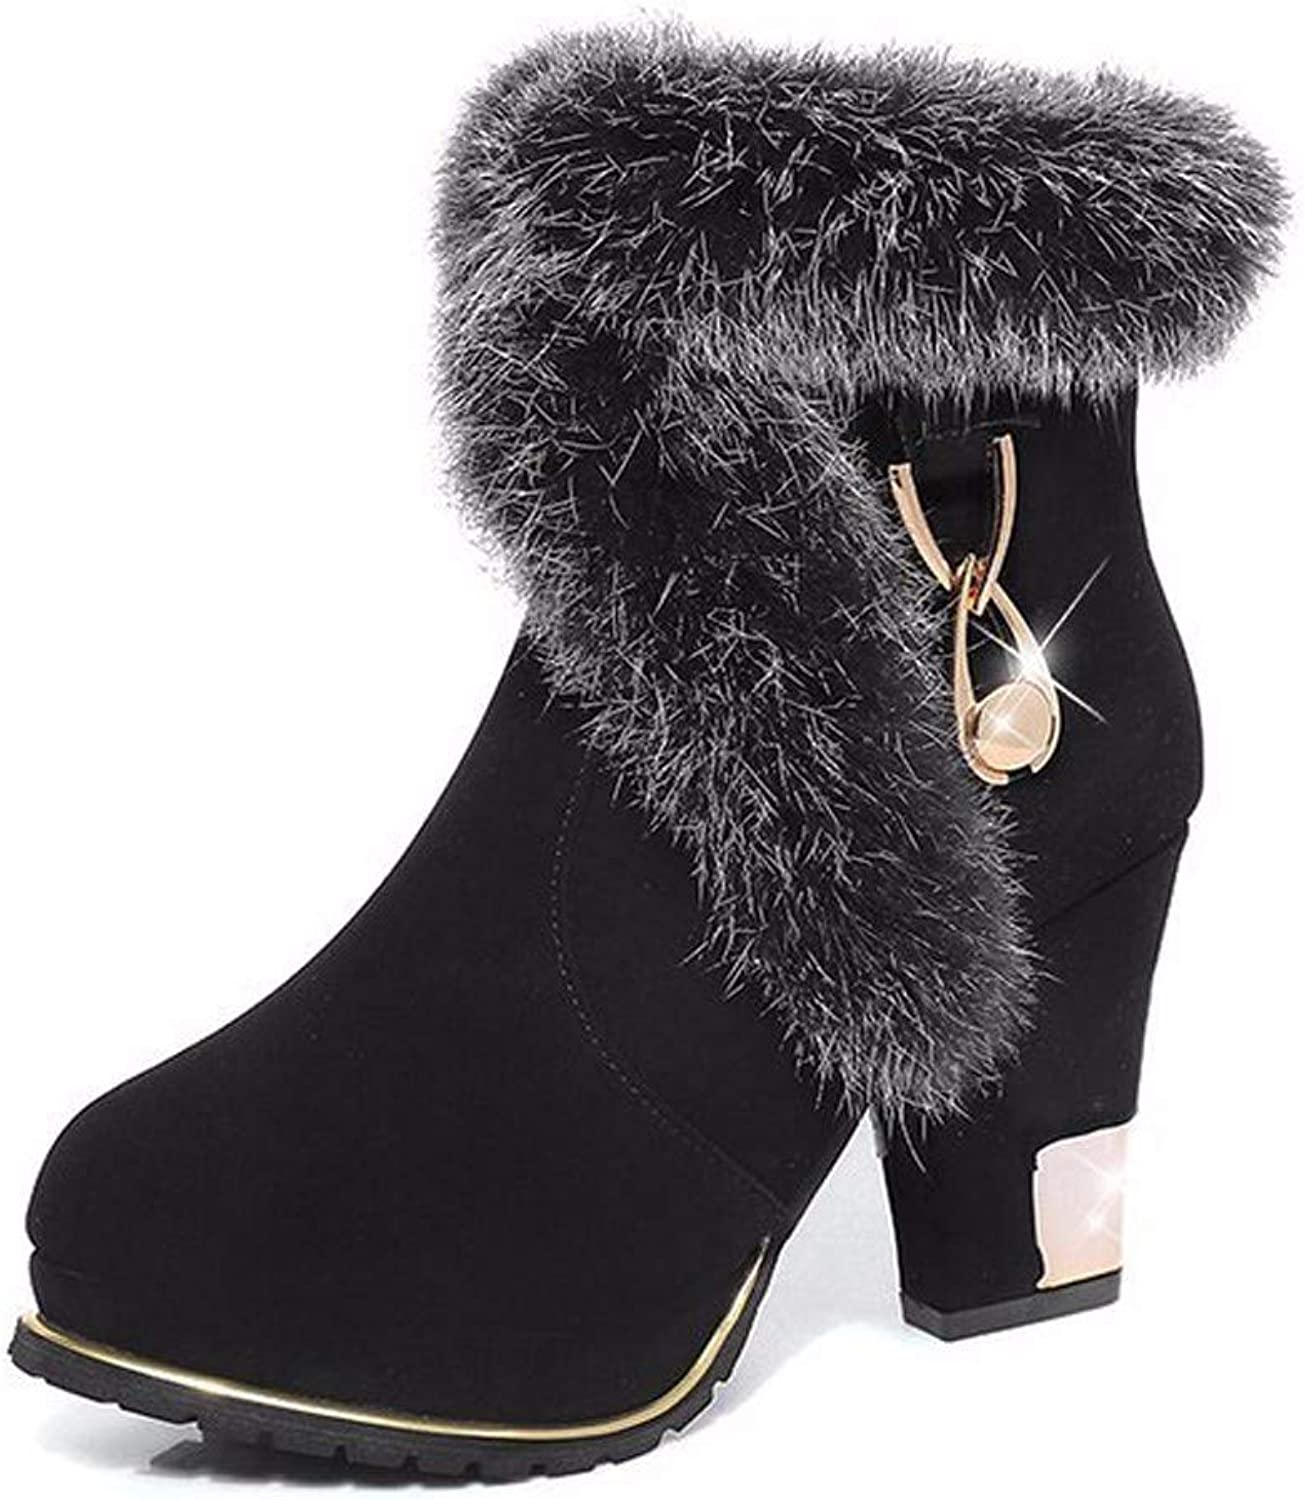 SFSYDDY Popular shoes in Winter Martin Boots with High 9Cm Cashmere Cotton shoes Autumn Rough Ankle Boots Wild Boots.